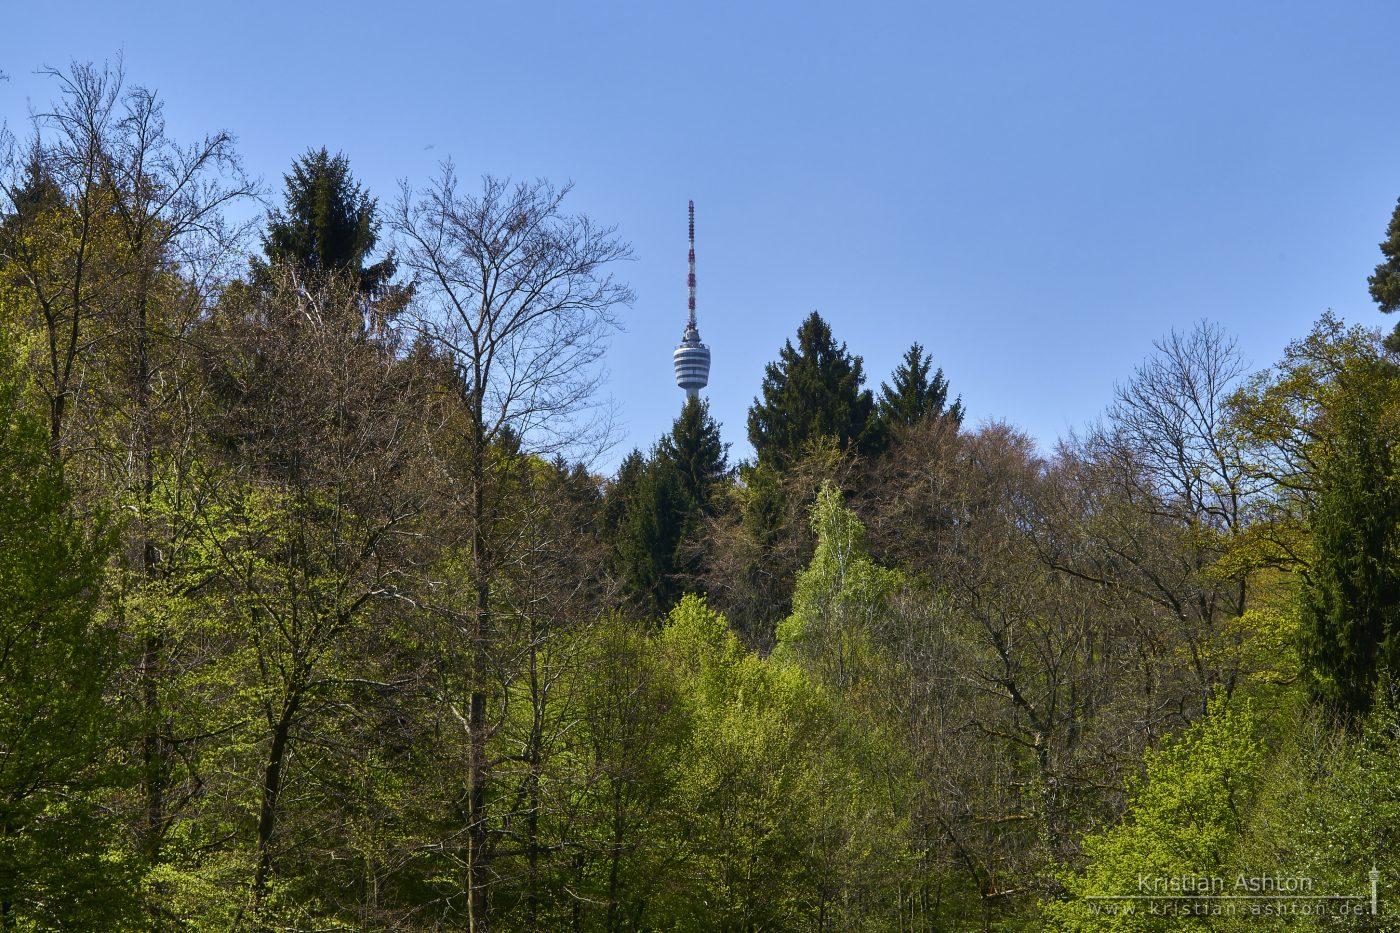 The television tower viewed from the Tiefenbachsee lake